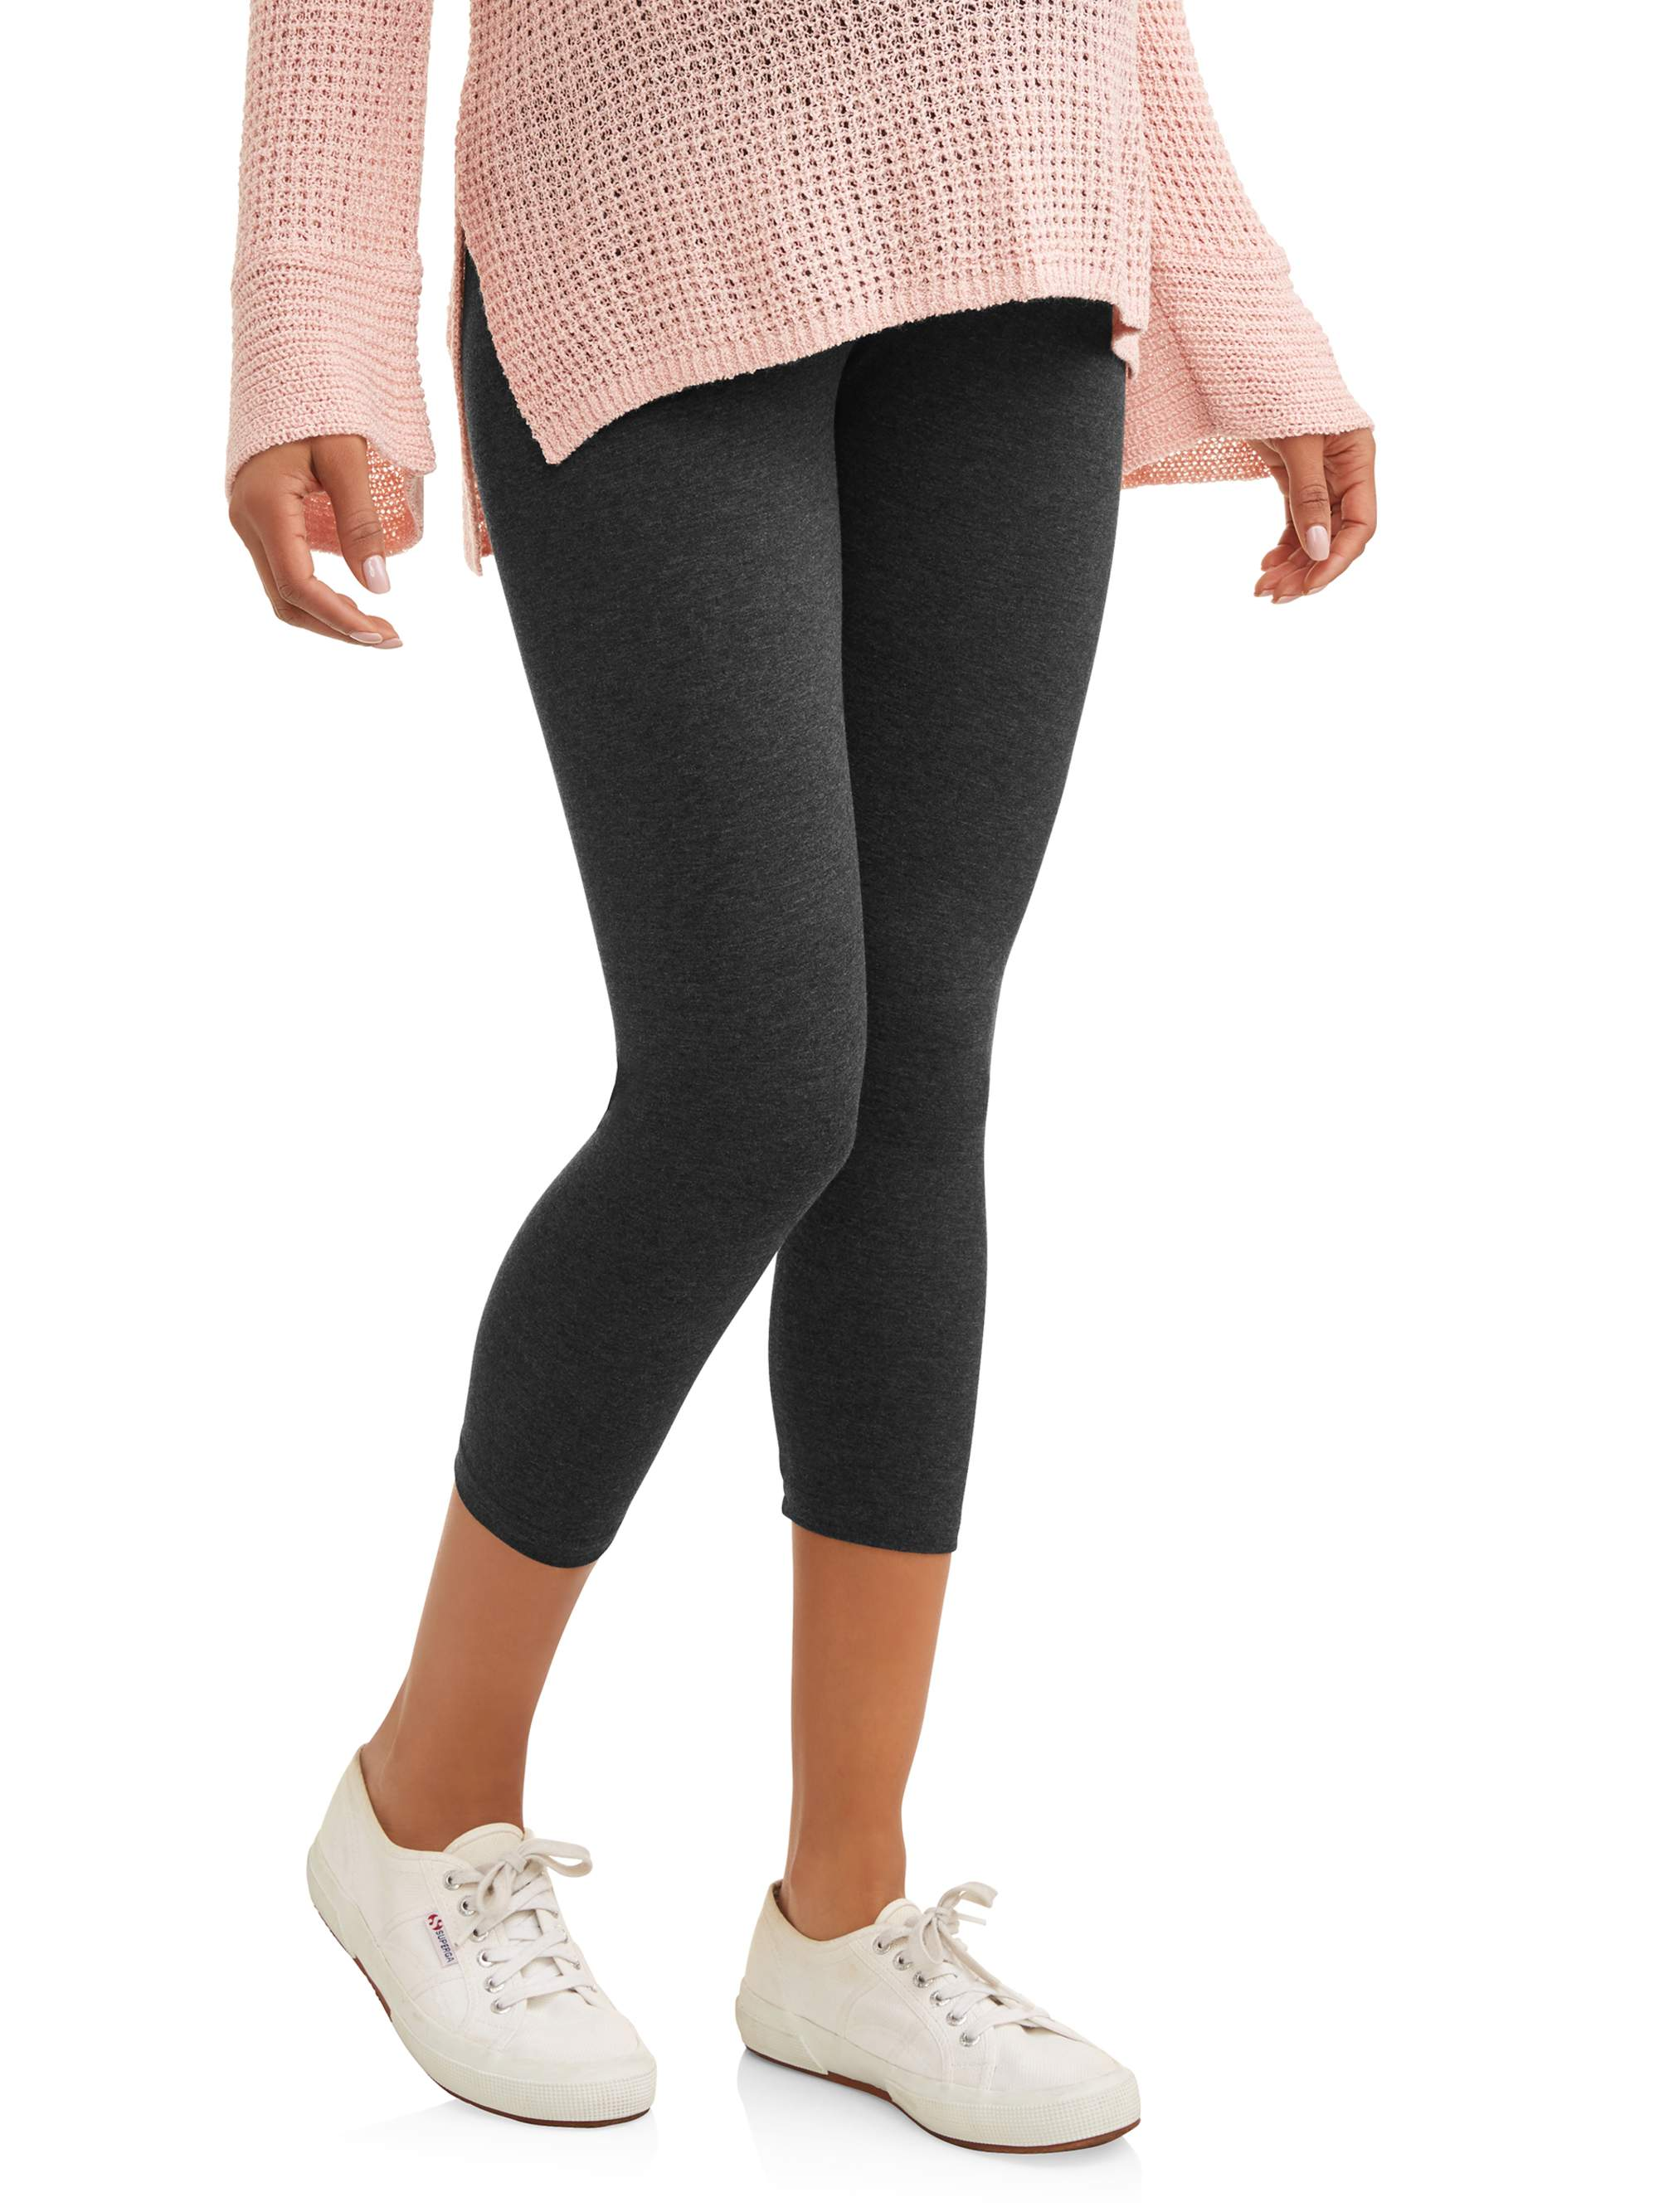 666420ef4d13b Oh! Mamma - Oh! Mamma Maternity Full Panel Capri Leggings - Available in  Plus Sizes - Walmart.com